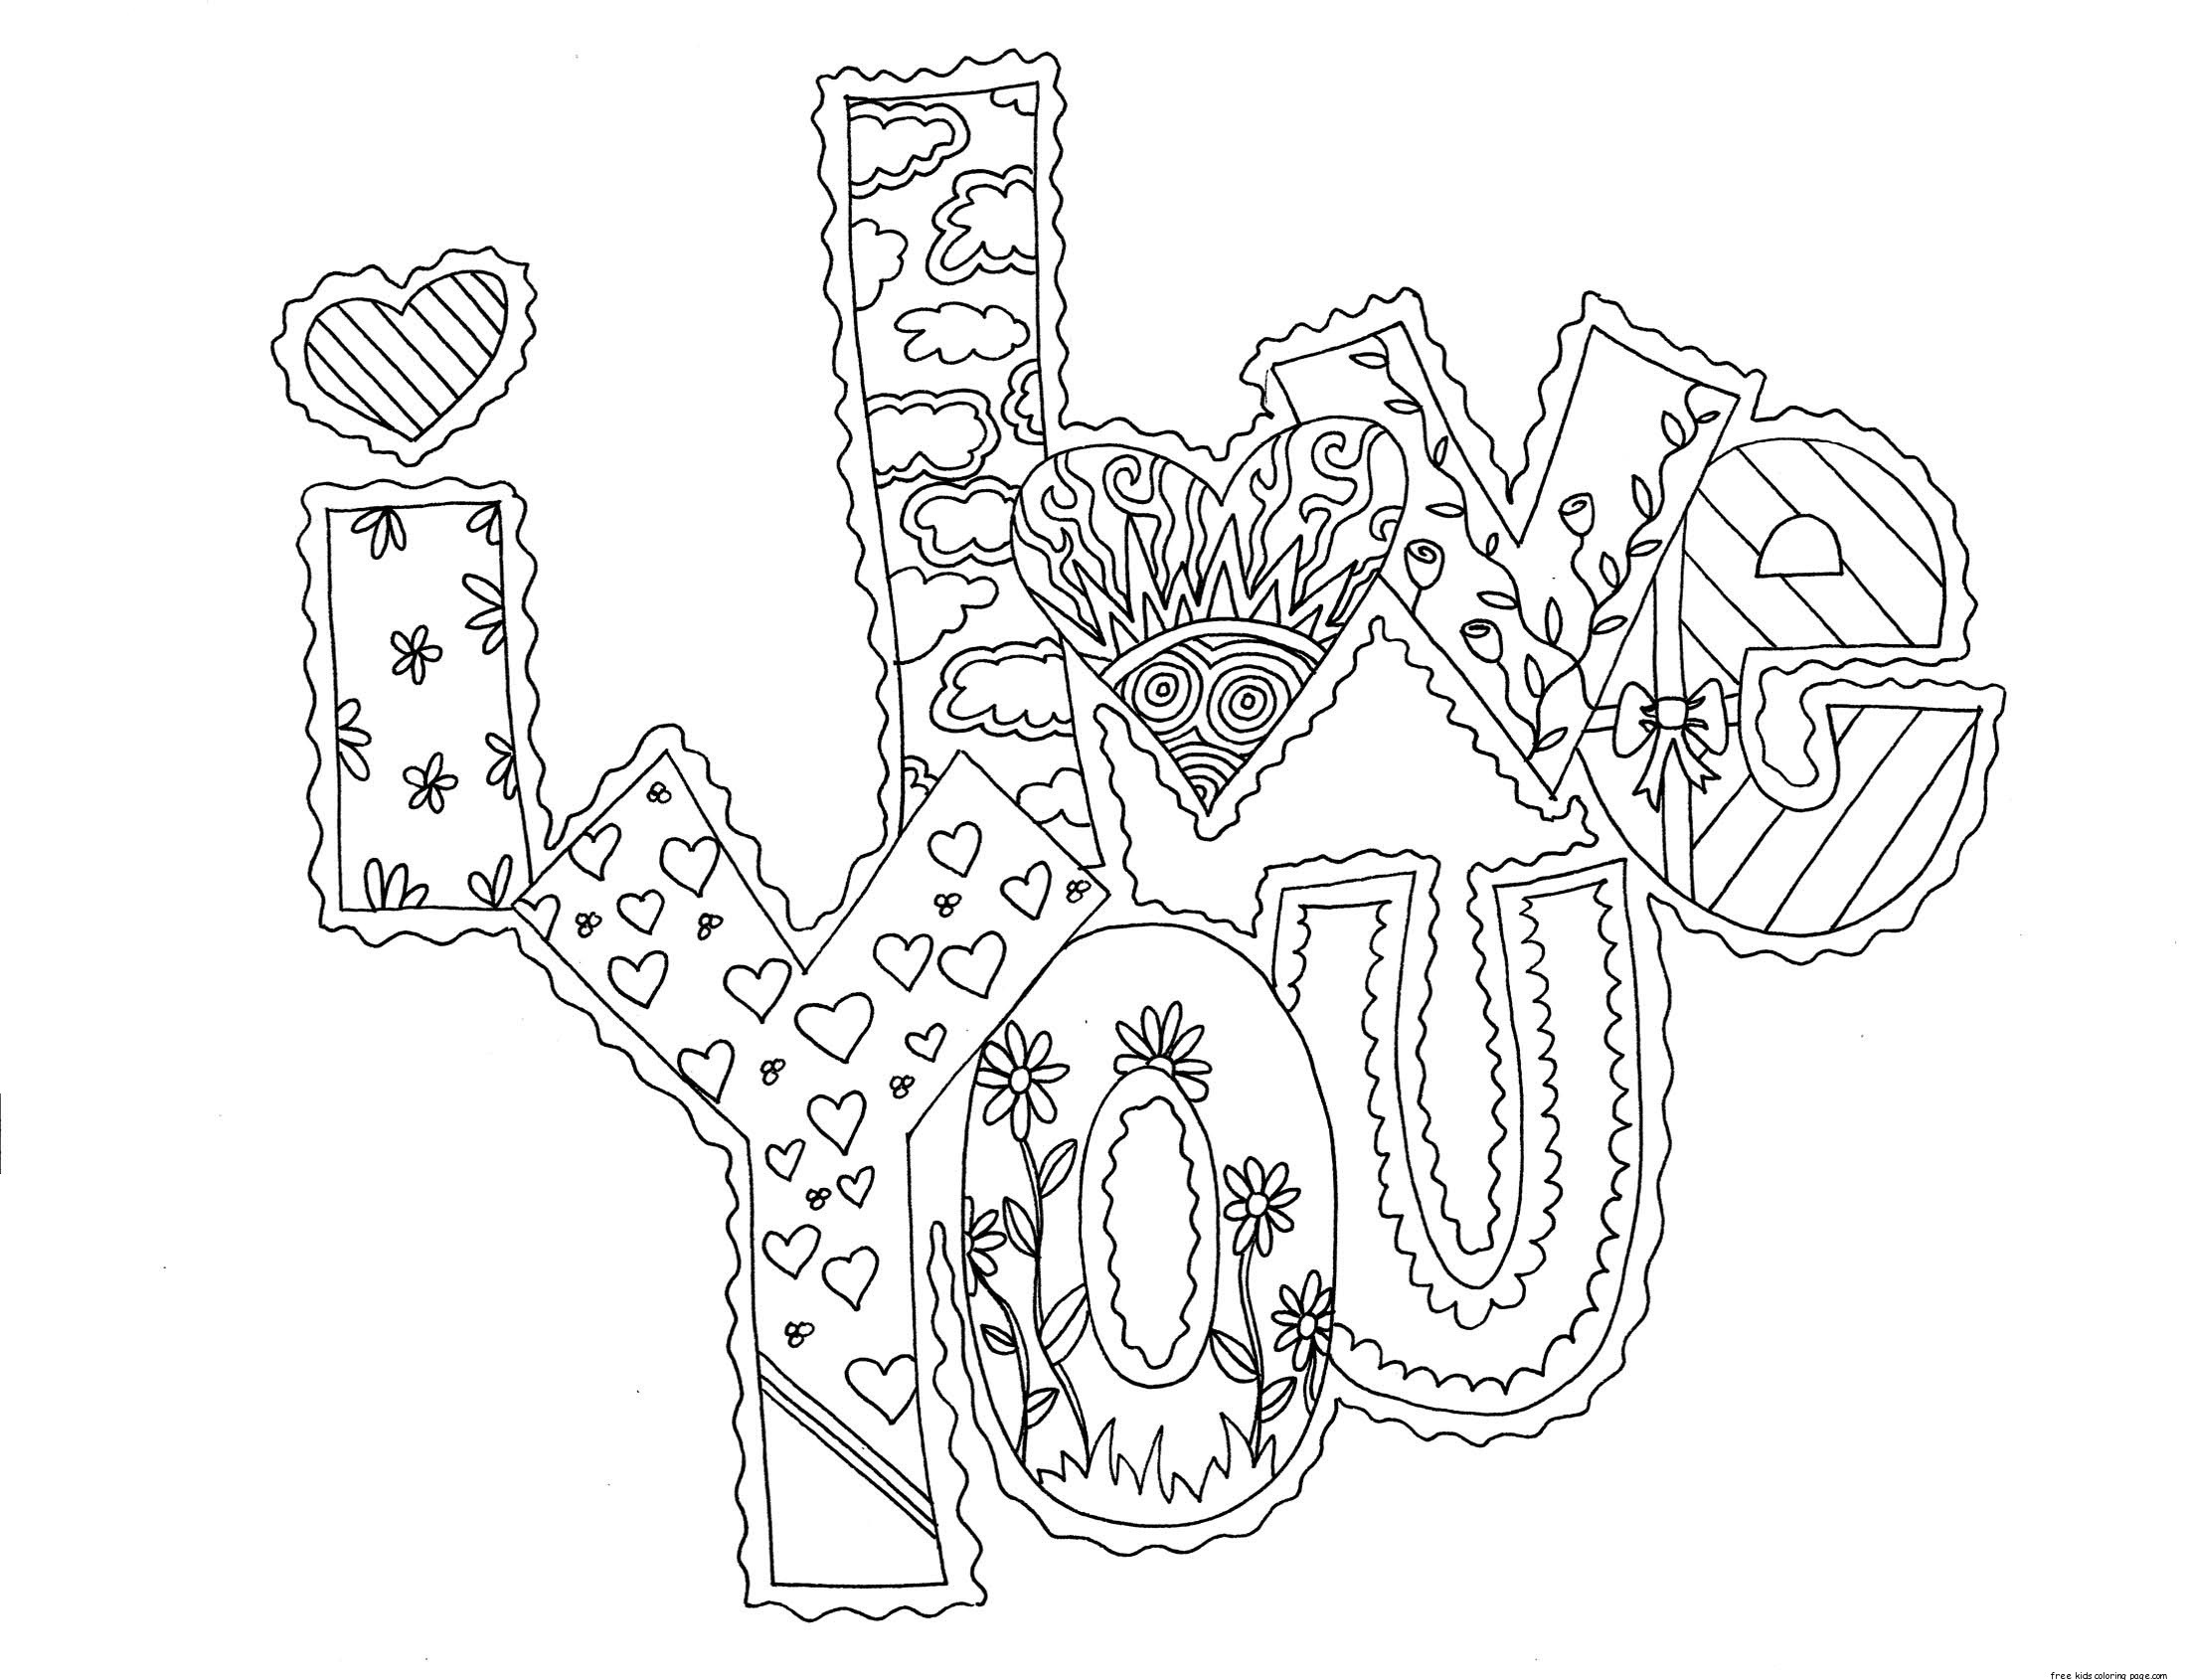 i love you printable coloring pages quoti love you quot coloring pages love coloring printable you i pages